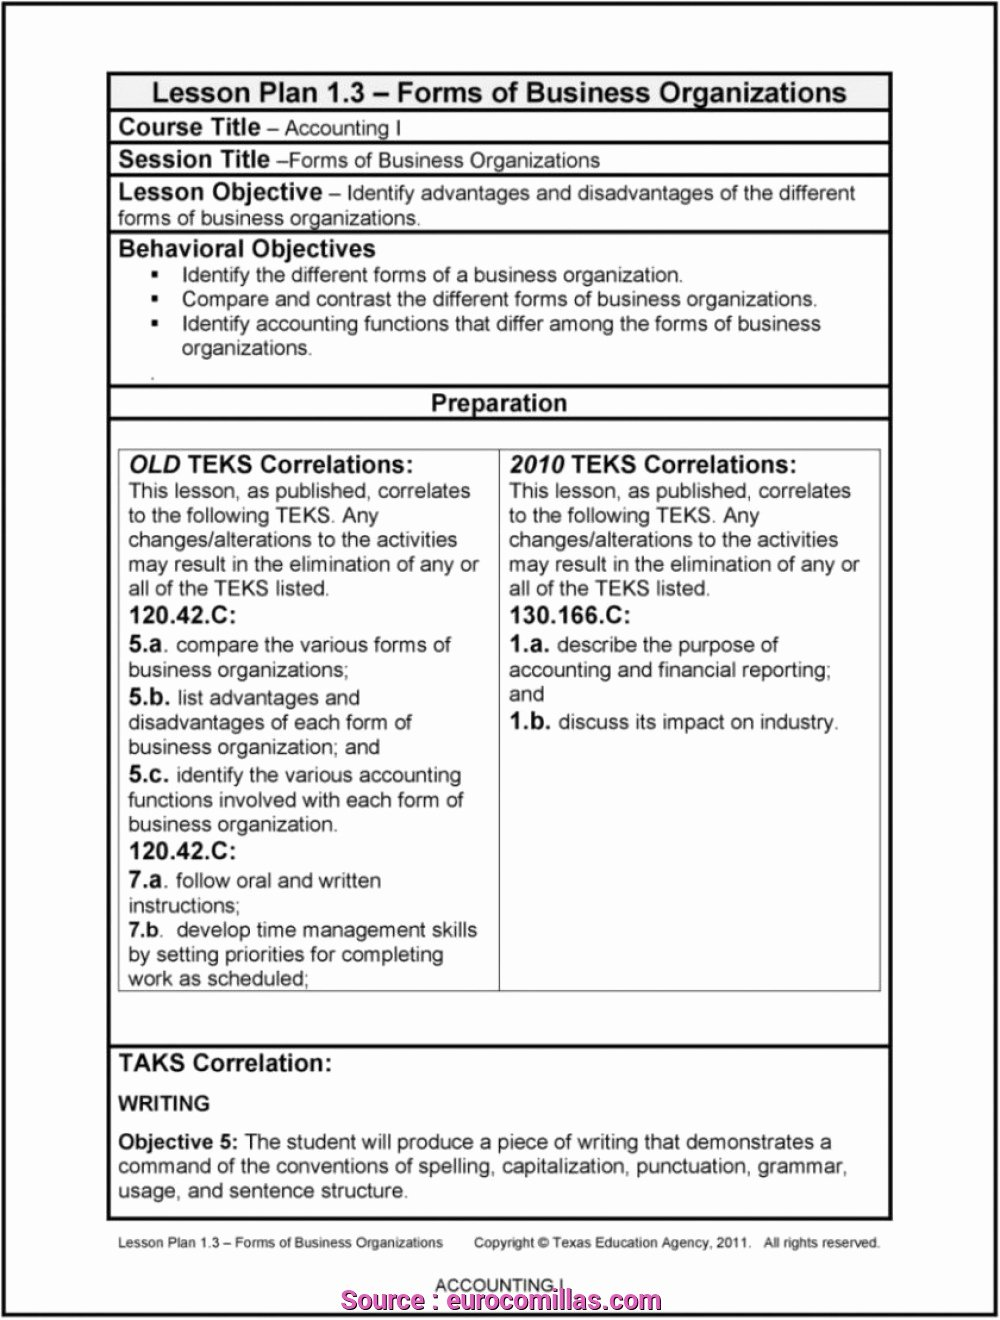 Texas Lesson Plans Template Best Of 7 Perfect How to Write A Lesson Plan In Texas solutions